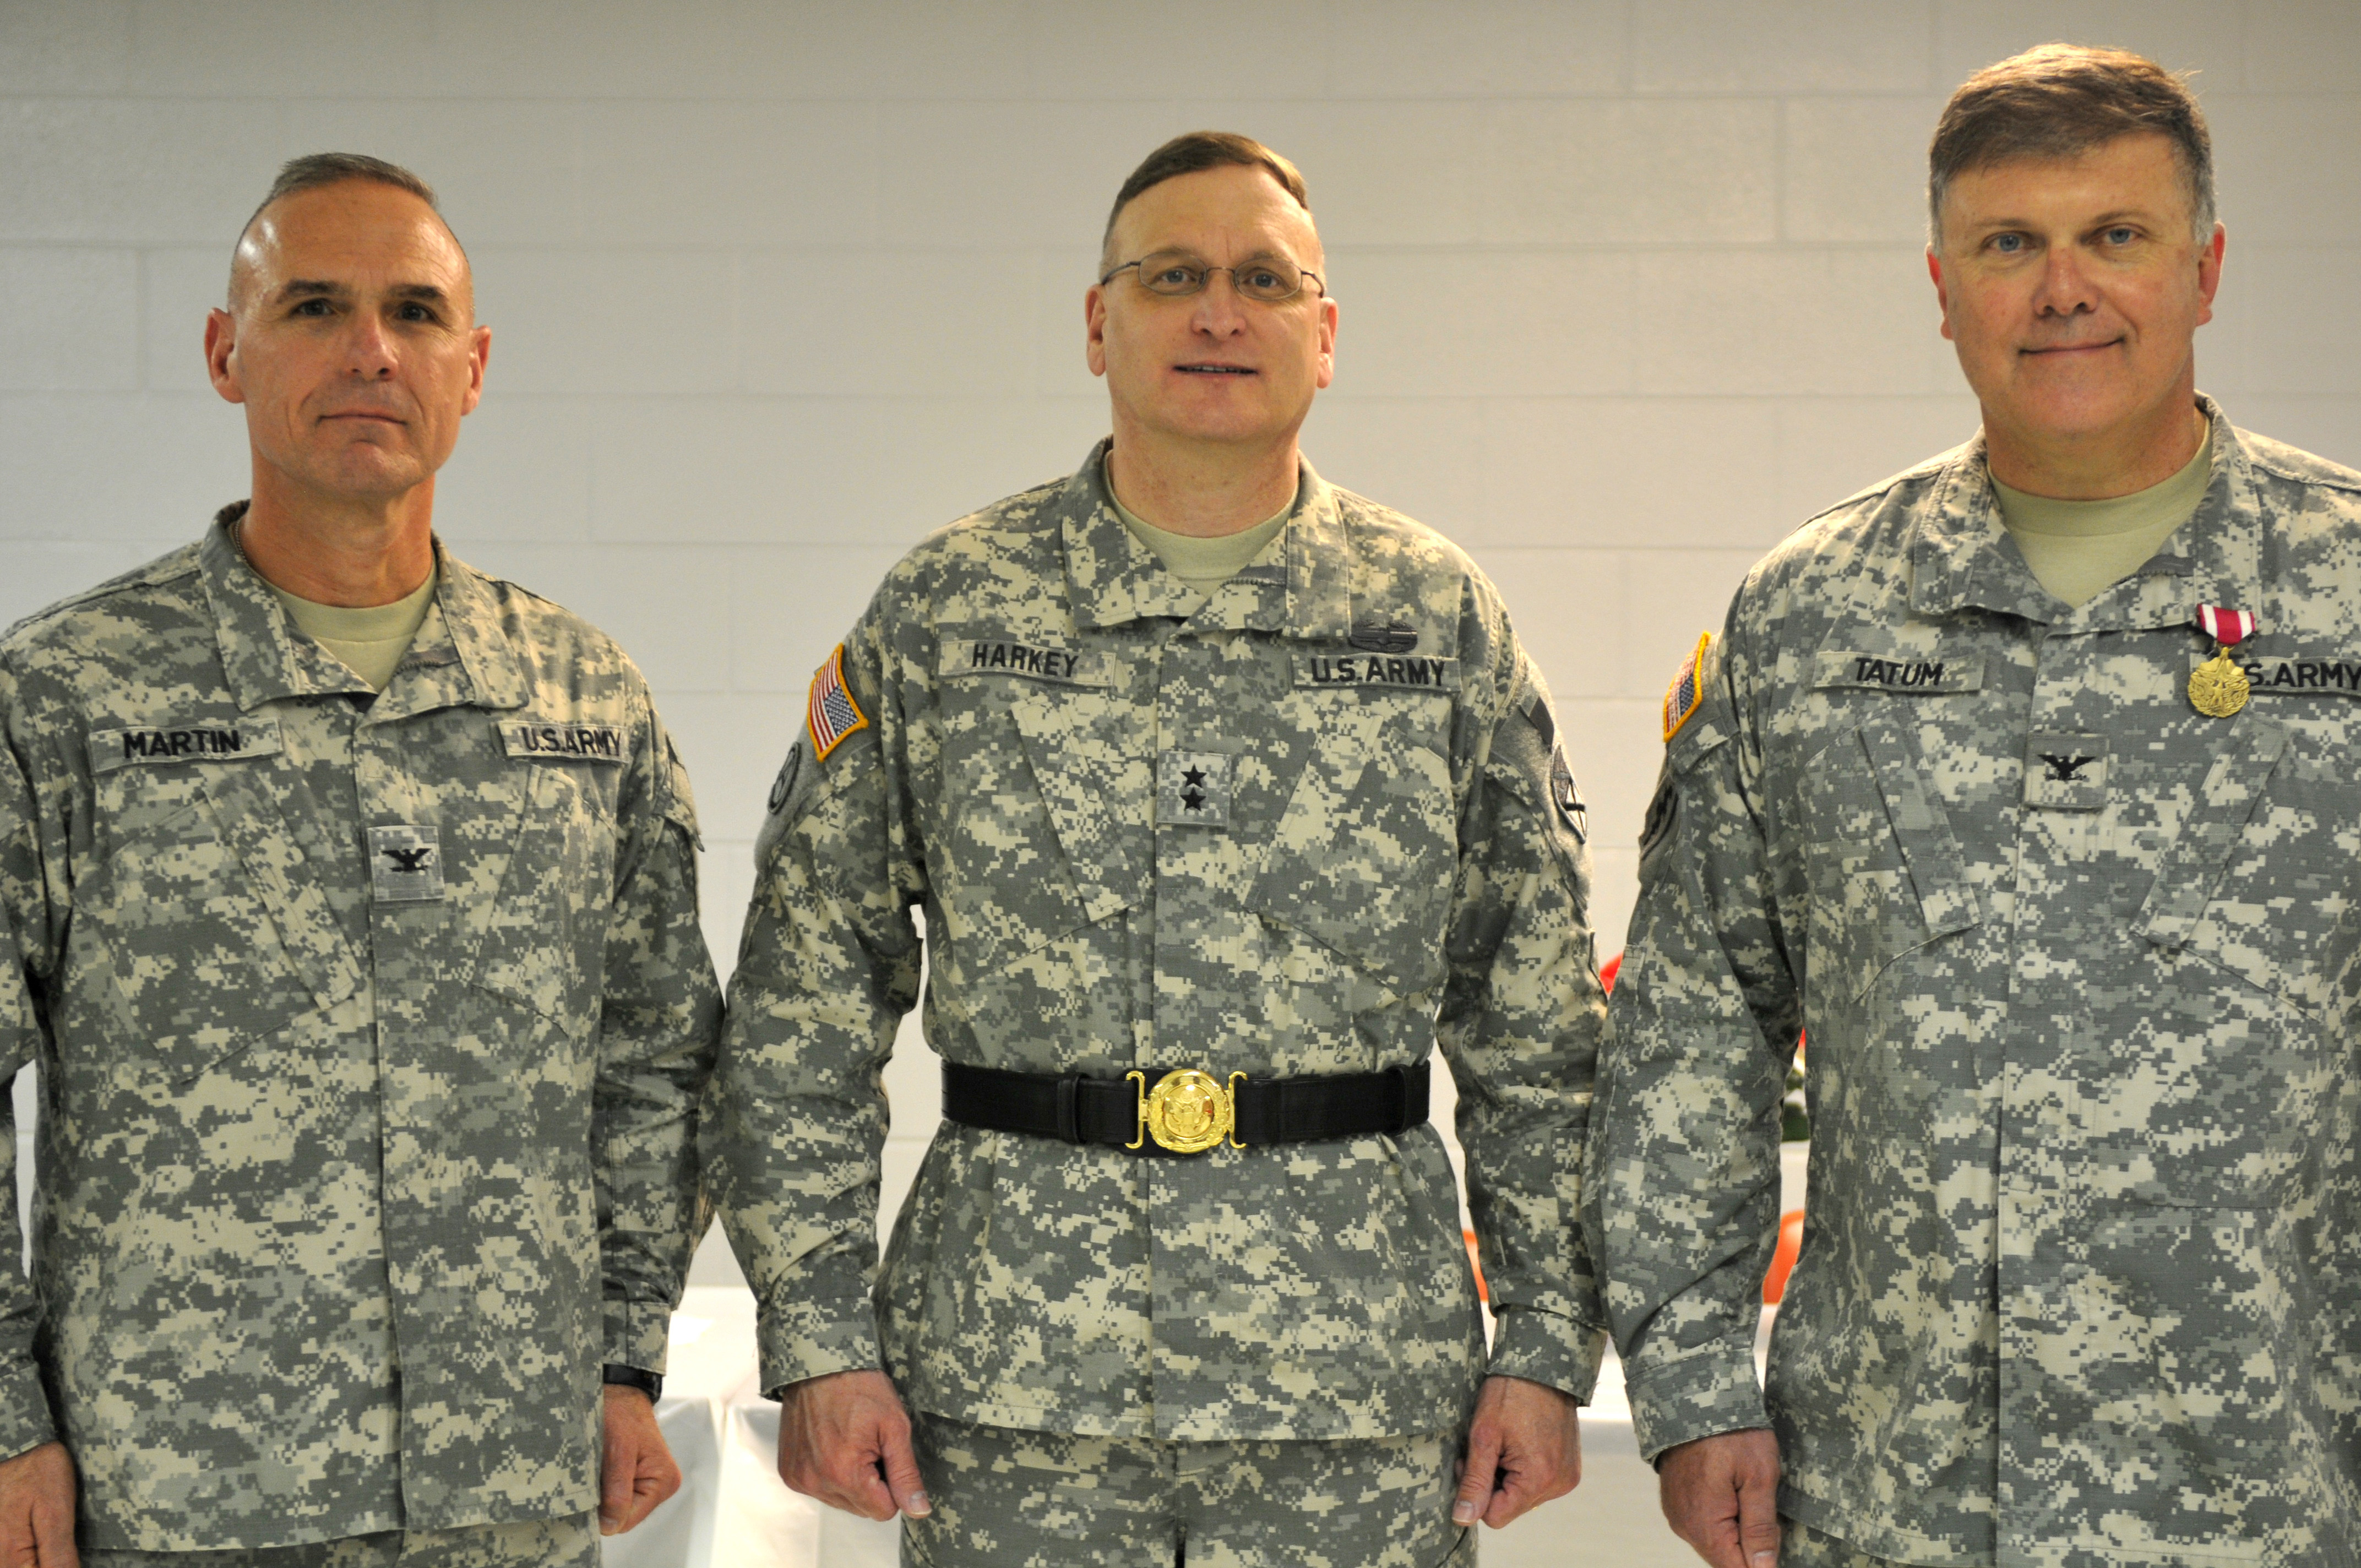 621st Troop Support Command has Change of Command Ceremony